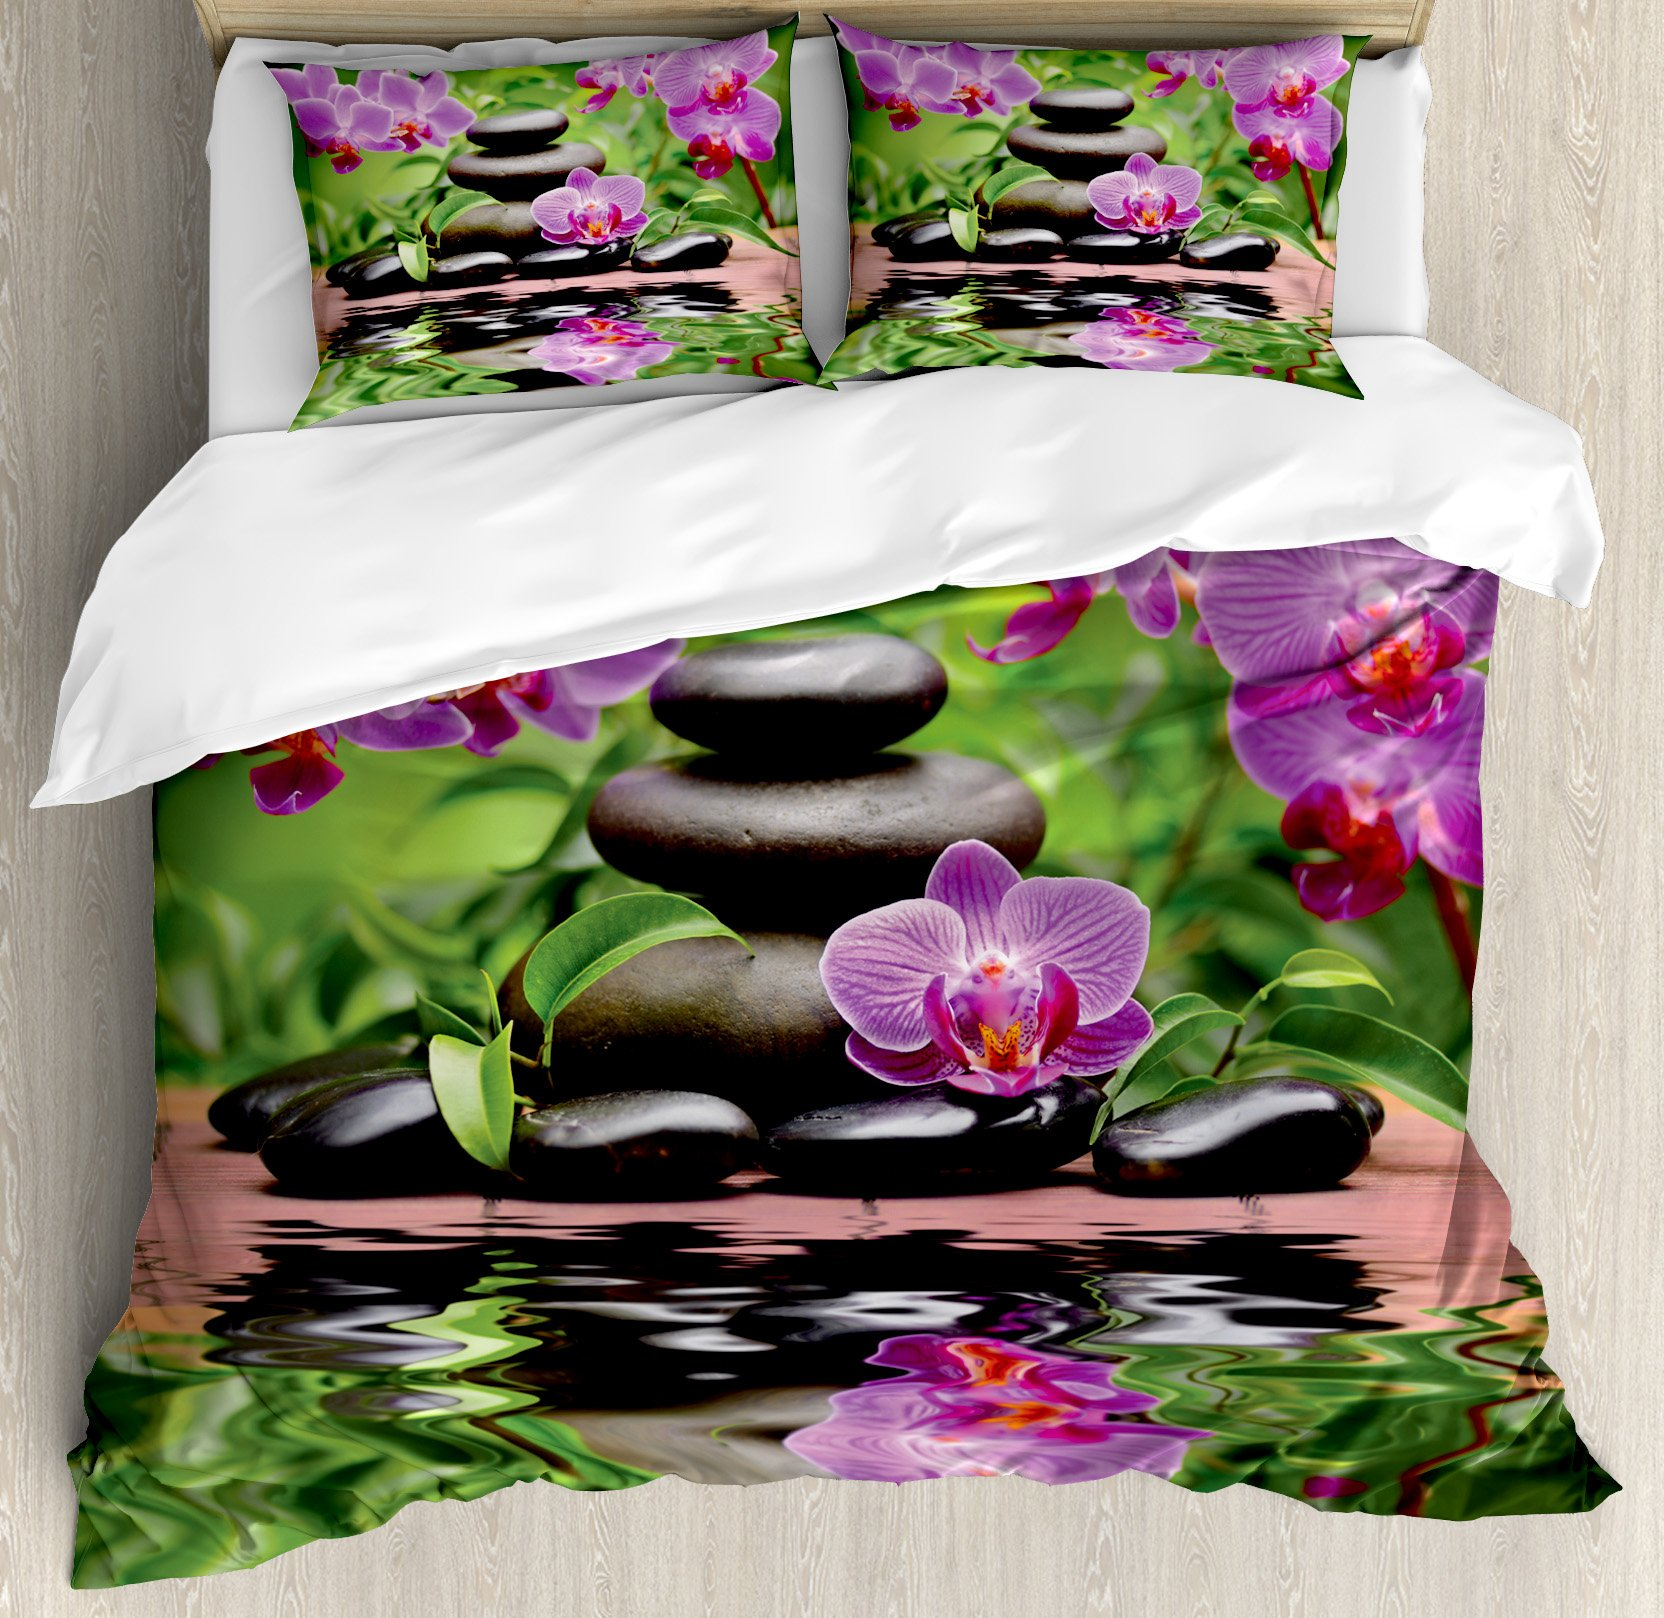 Spa Decor King Size Duvet Cover Set by Ambesonne, Zen Basalt Stones and Orchid Reflecting on Water Greenery Wellbeing Tropical, Decorative 3 Piece Bedding Set with 2 Pillow Shams